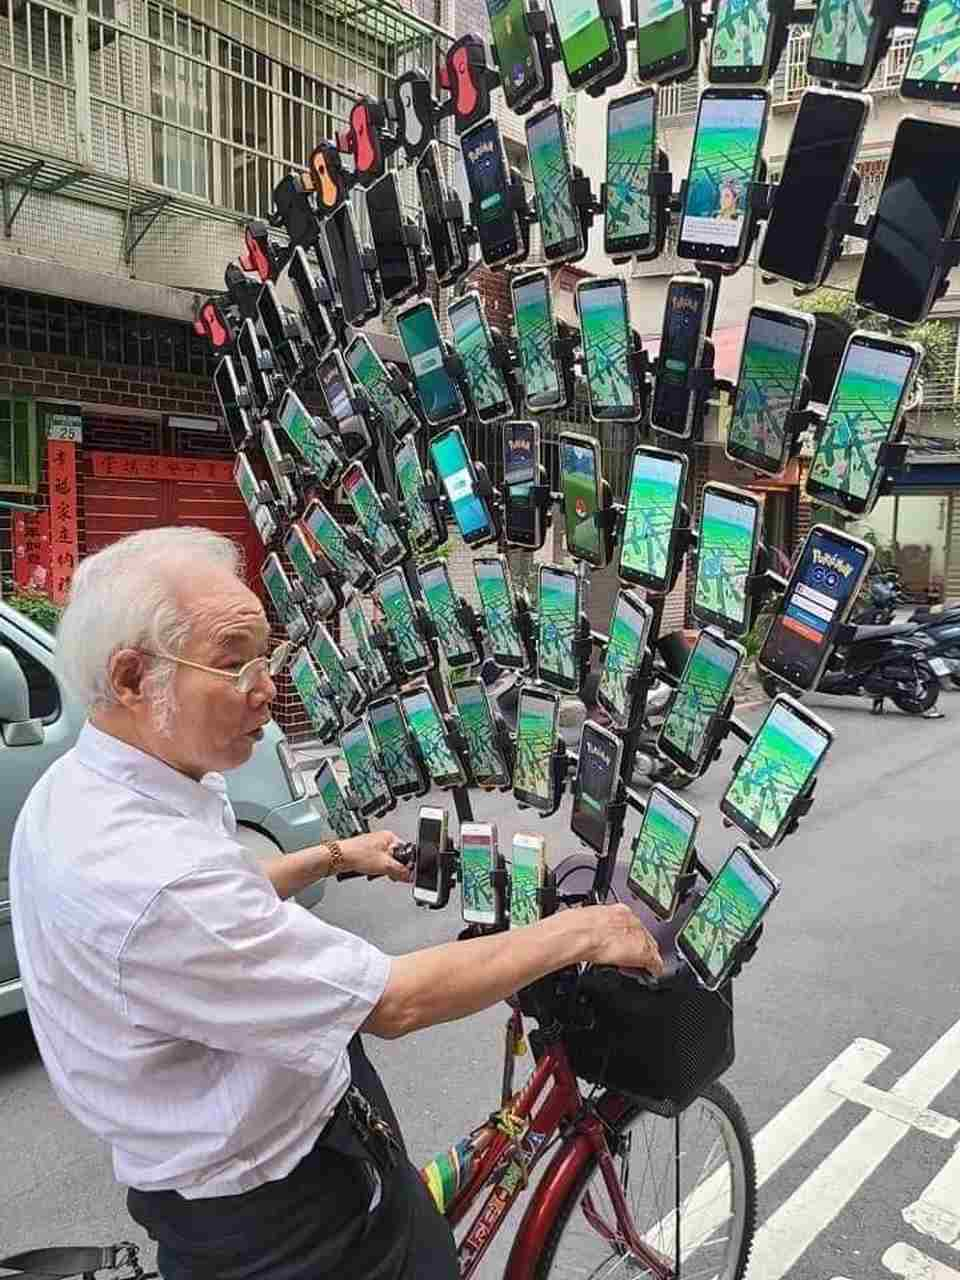 'Pokémon Go grandpa' already has 64 cell phones on bicycle